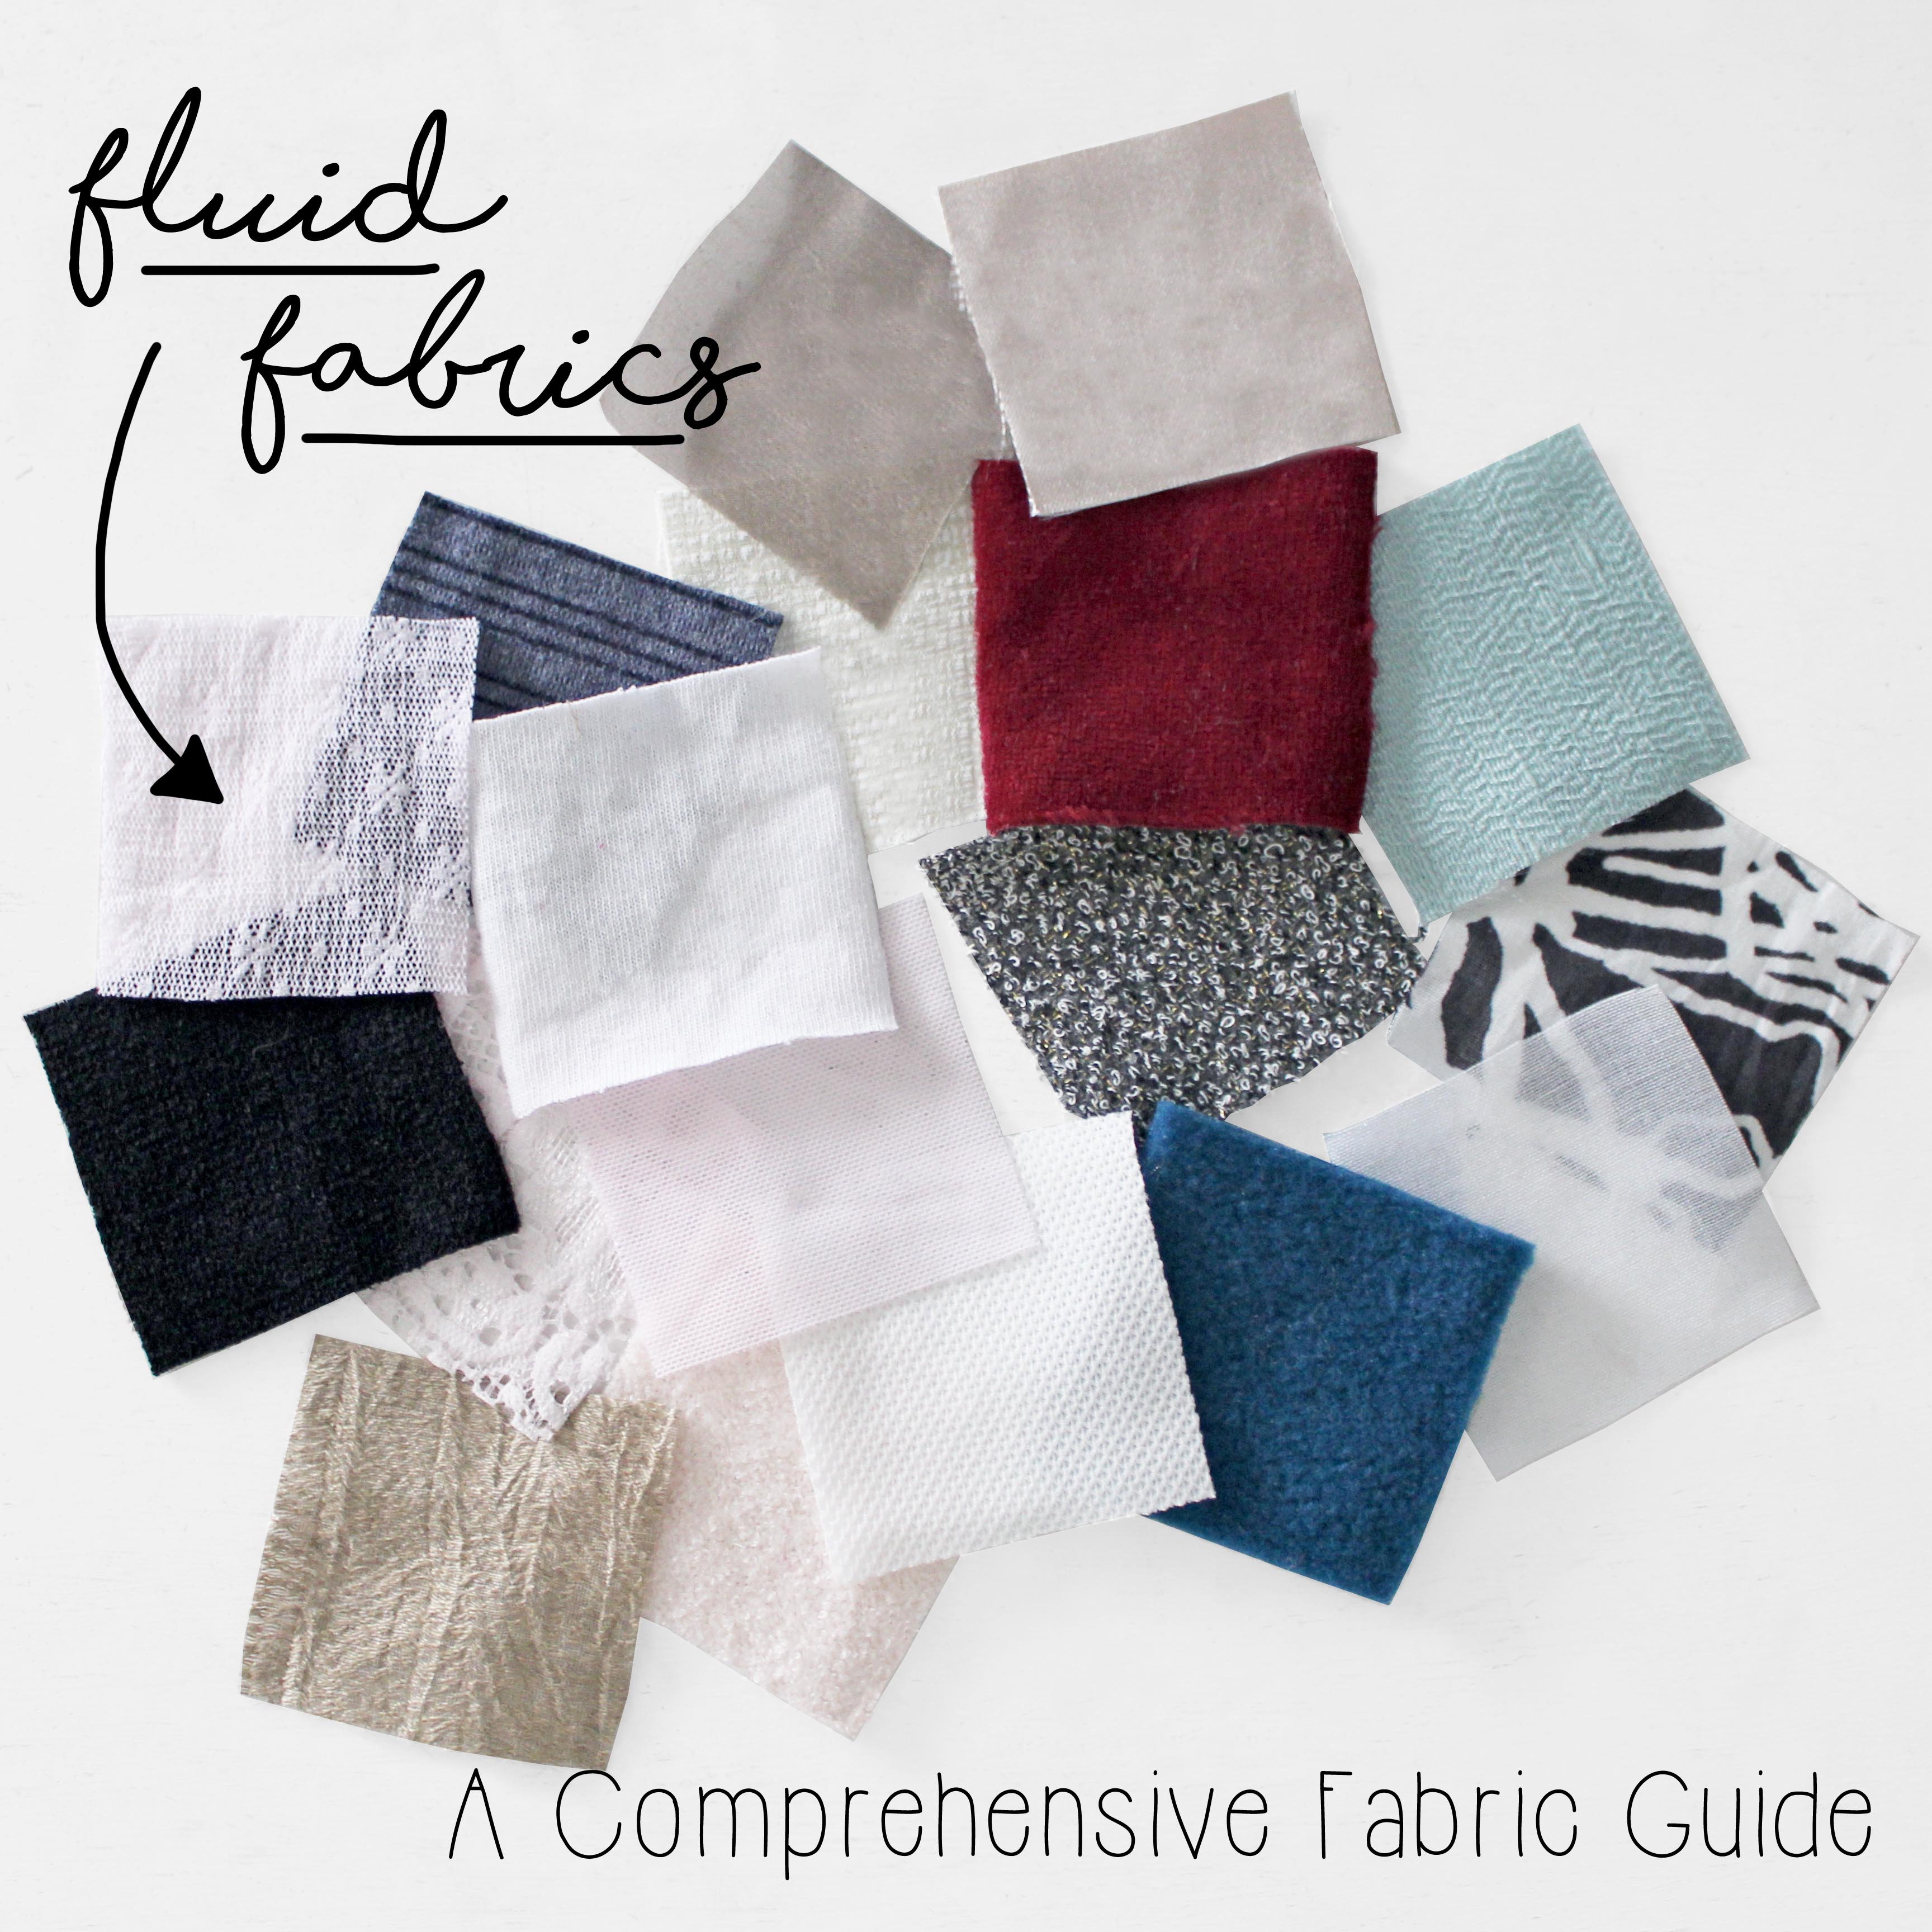 Comprehensive Fabric Guide Fluid Fabric Swatches